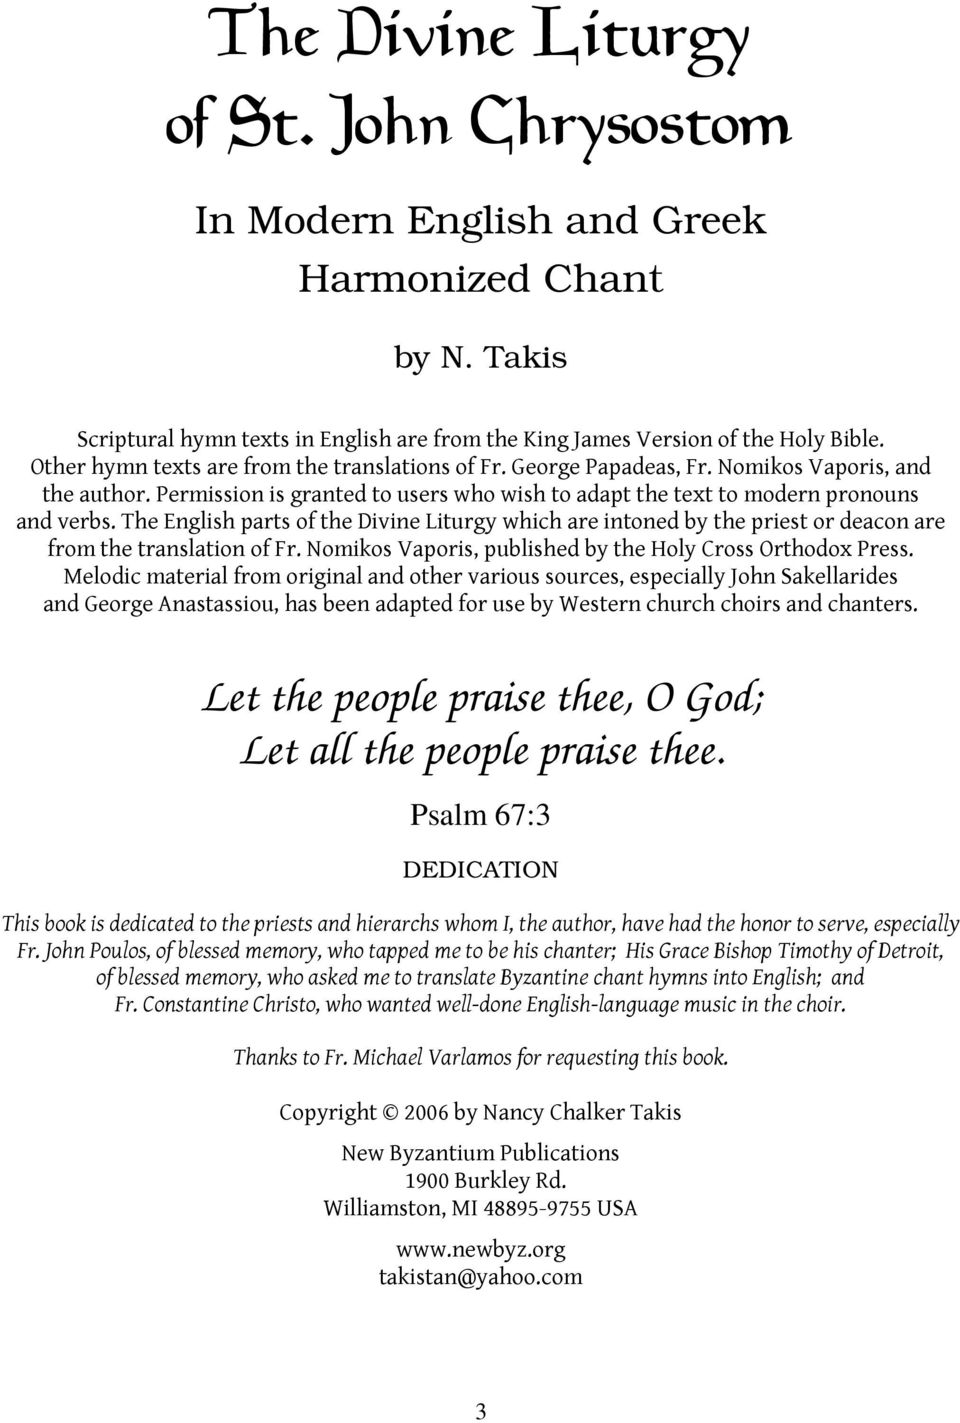 The English parts of the Divine Liturgy which are intoned by the priest or deacon are from the translation of Fr. Nomios Vaporis, published by the Holy Cross Orthodox Press.